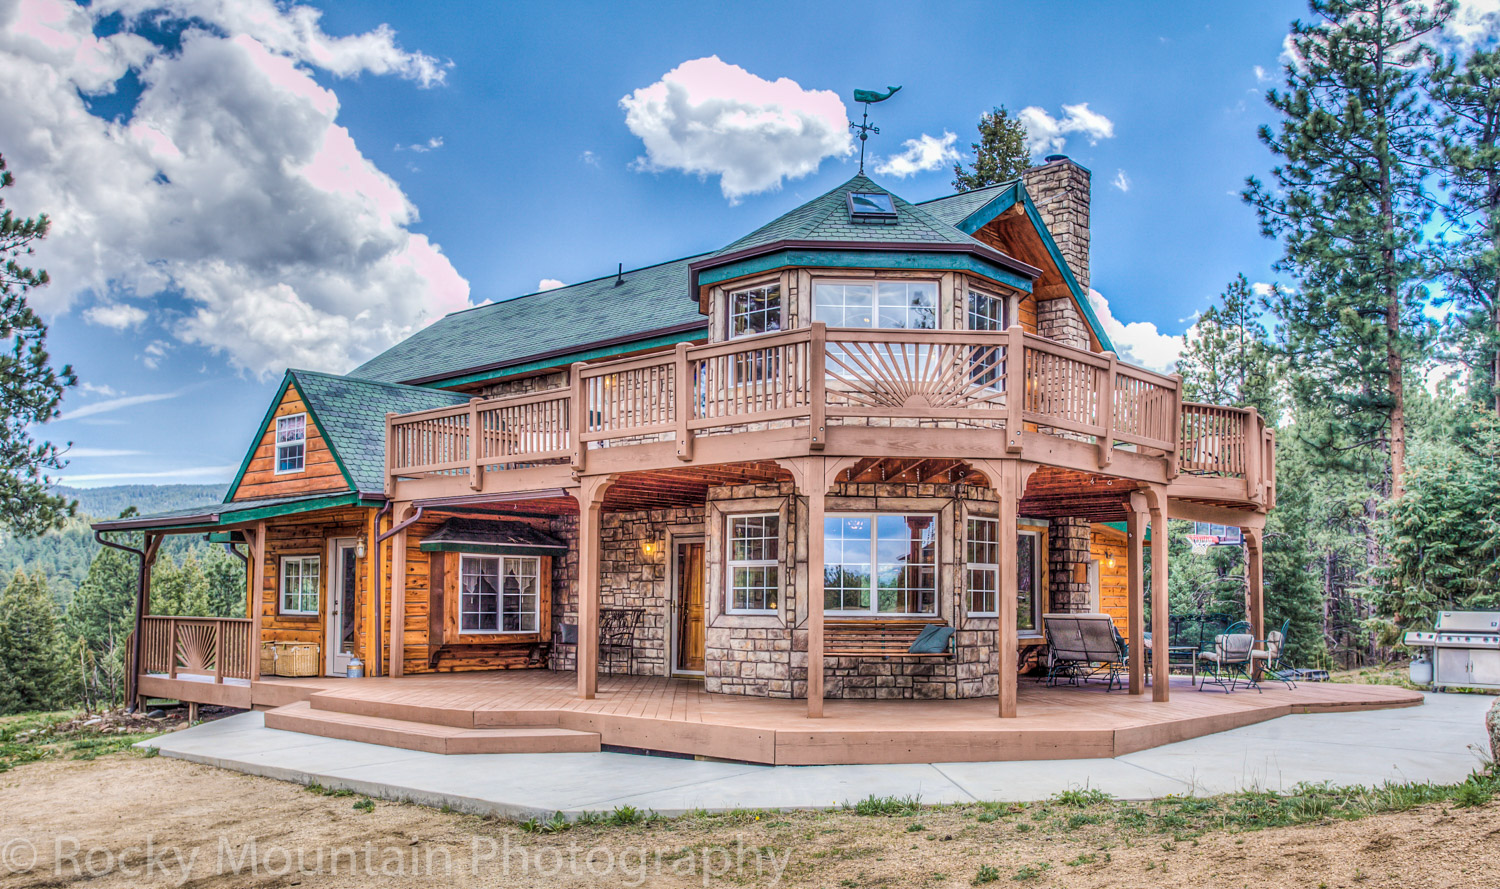 Residential Real Estate HDR Exterior-8